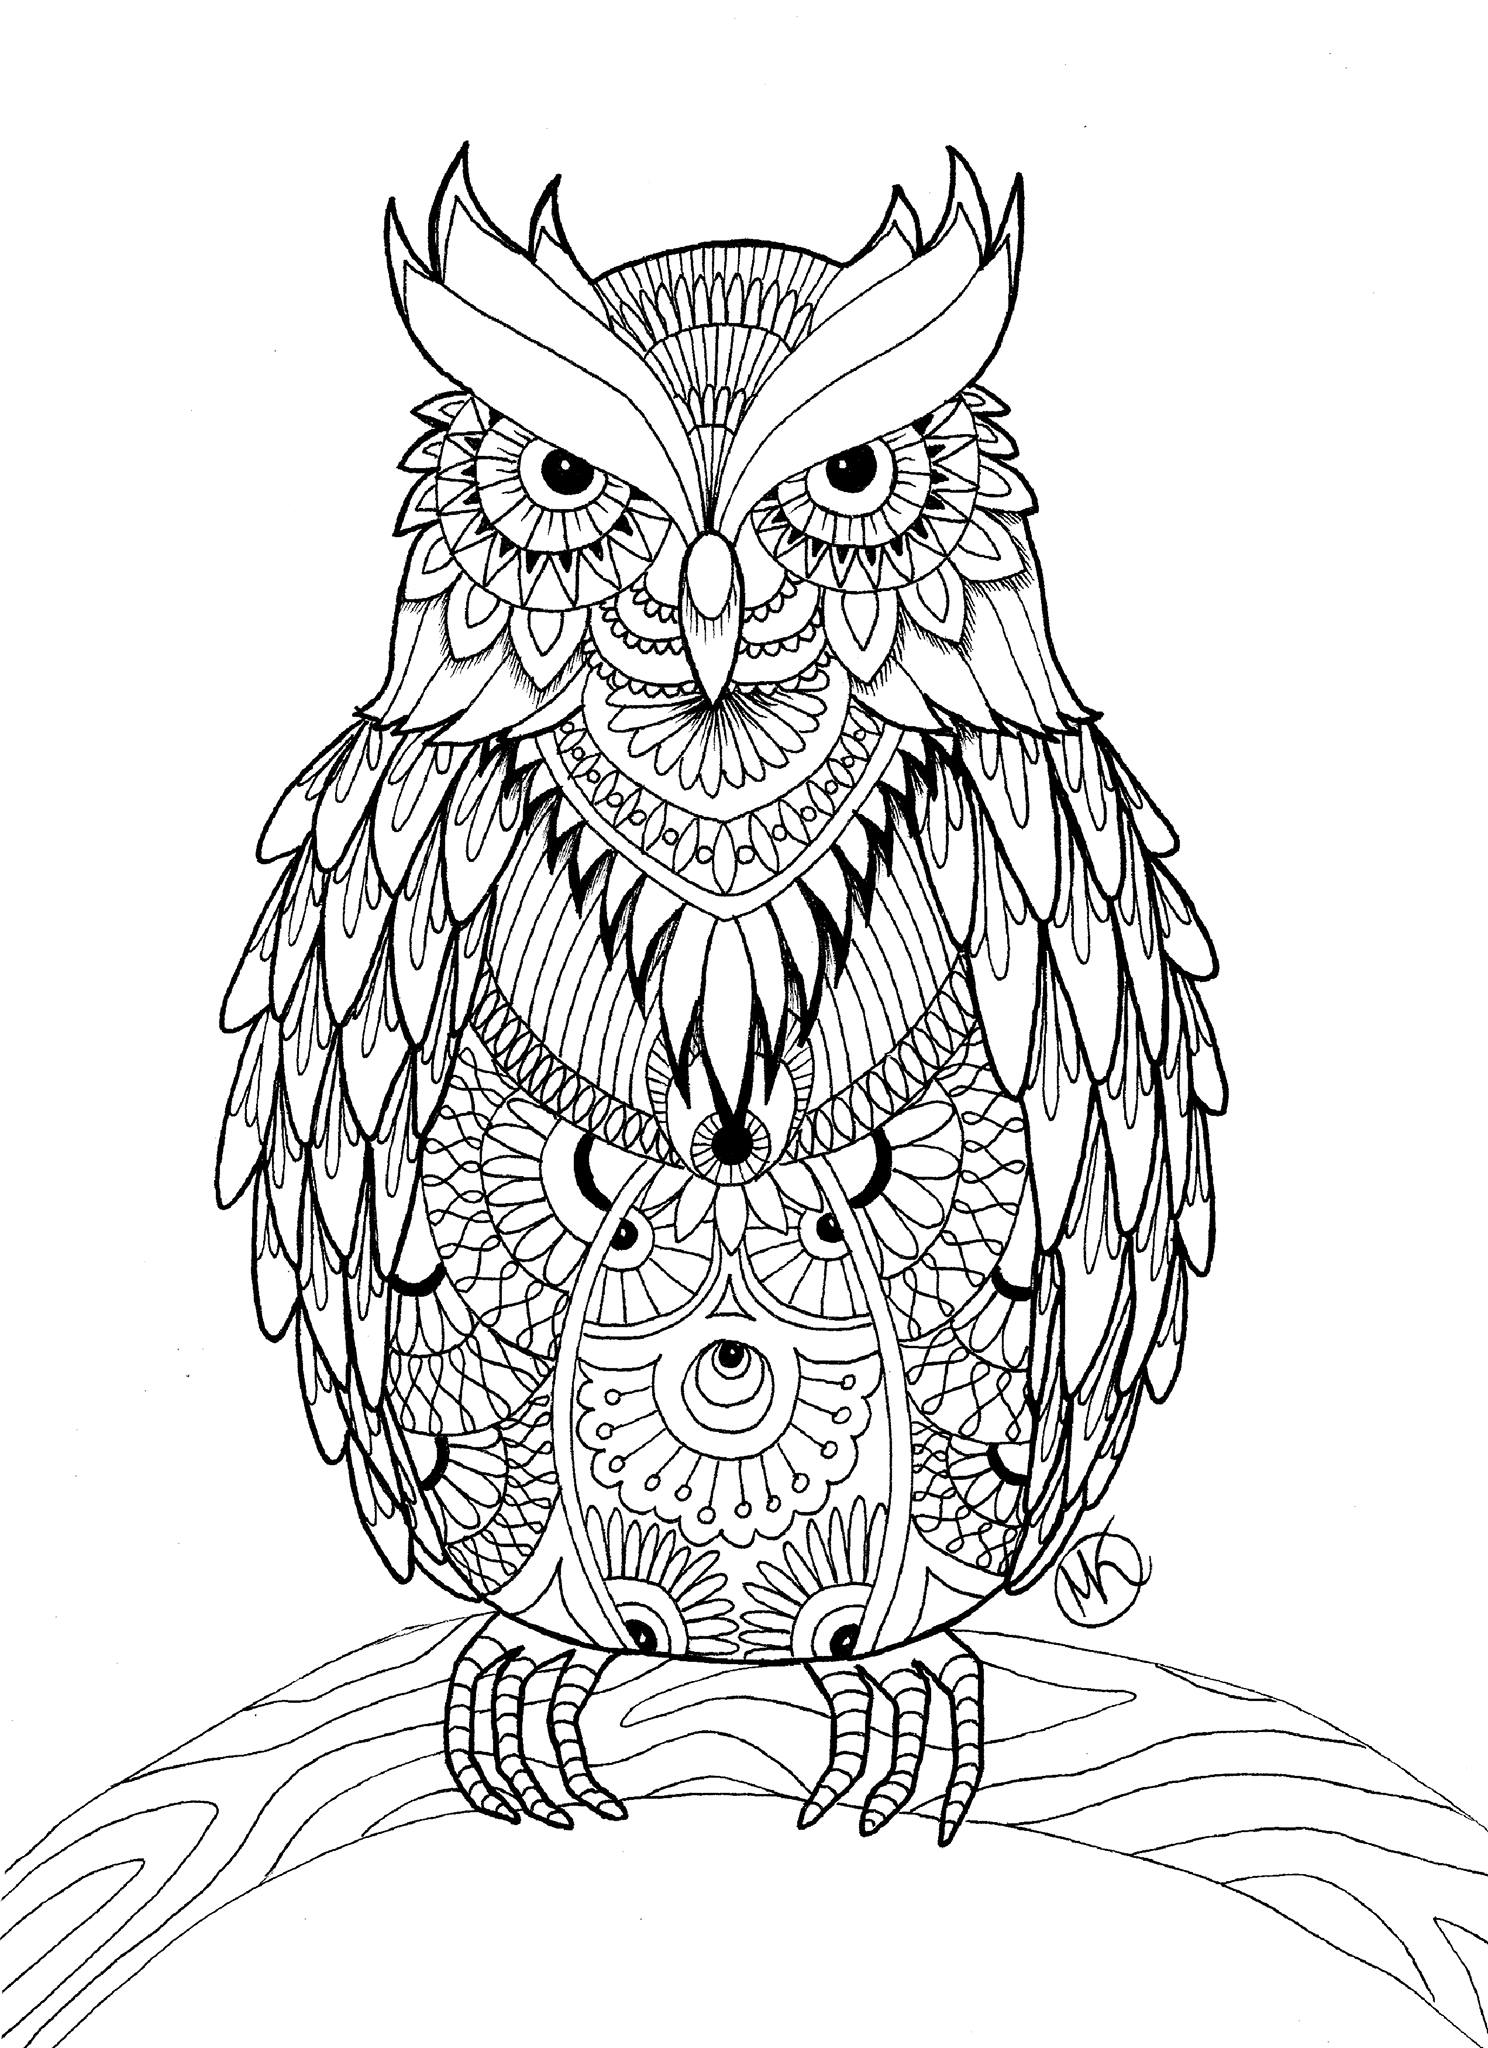 coloring pages online for adults free adult floral coloring page the graphics fairy online for coloring pages adults